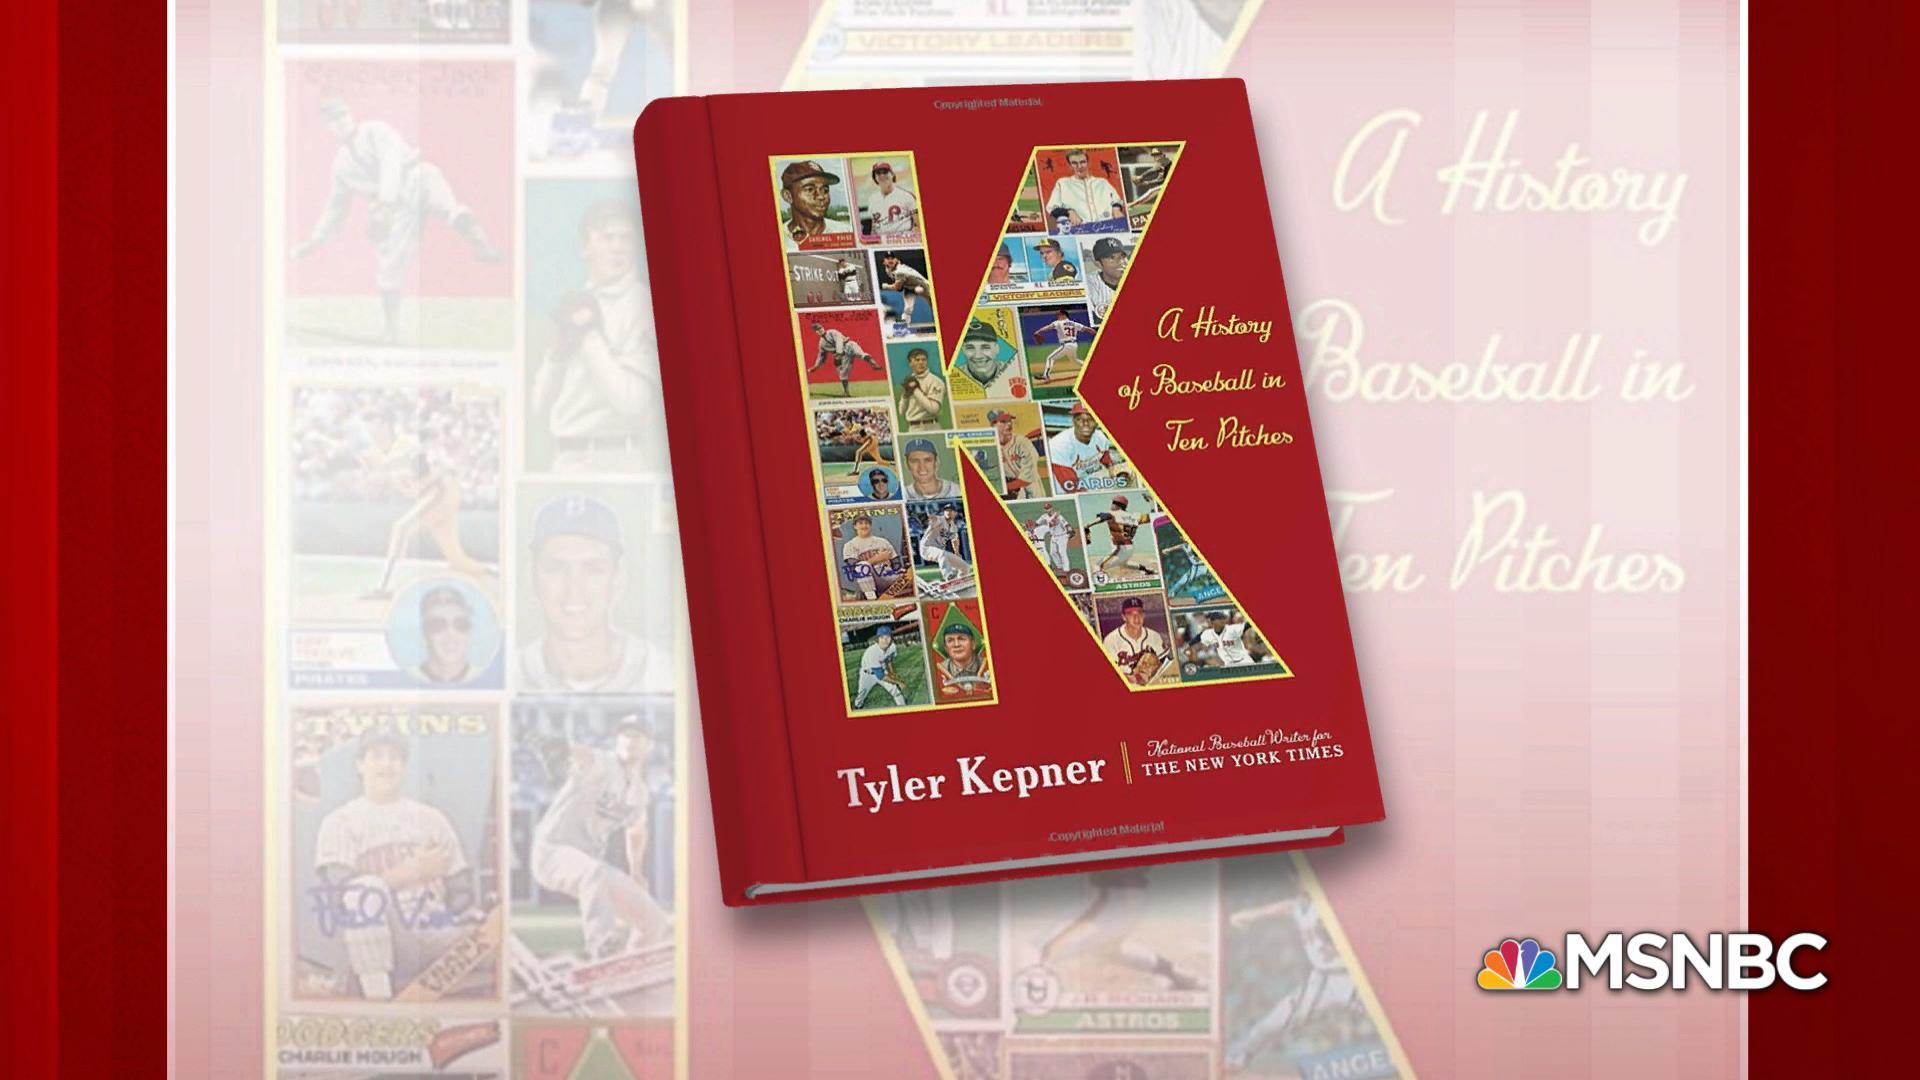 Baseball fans rejoice: An entire book about iconic pitches